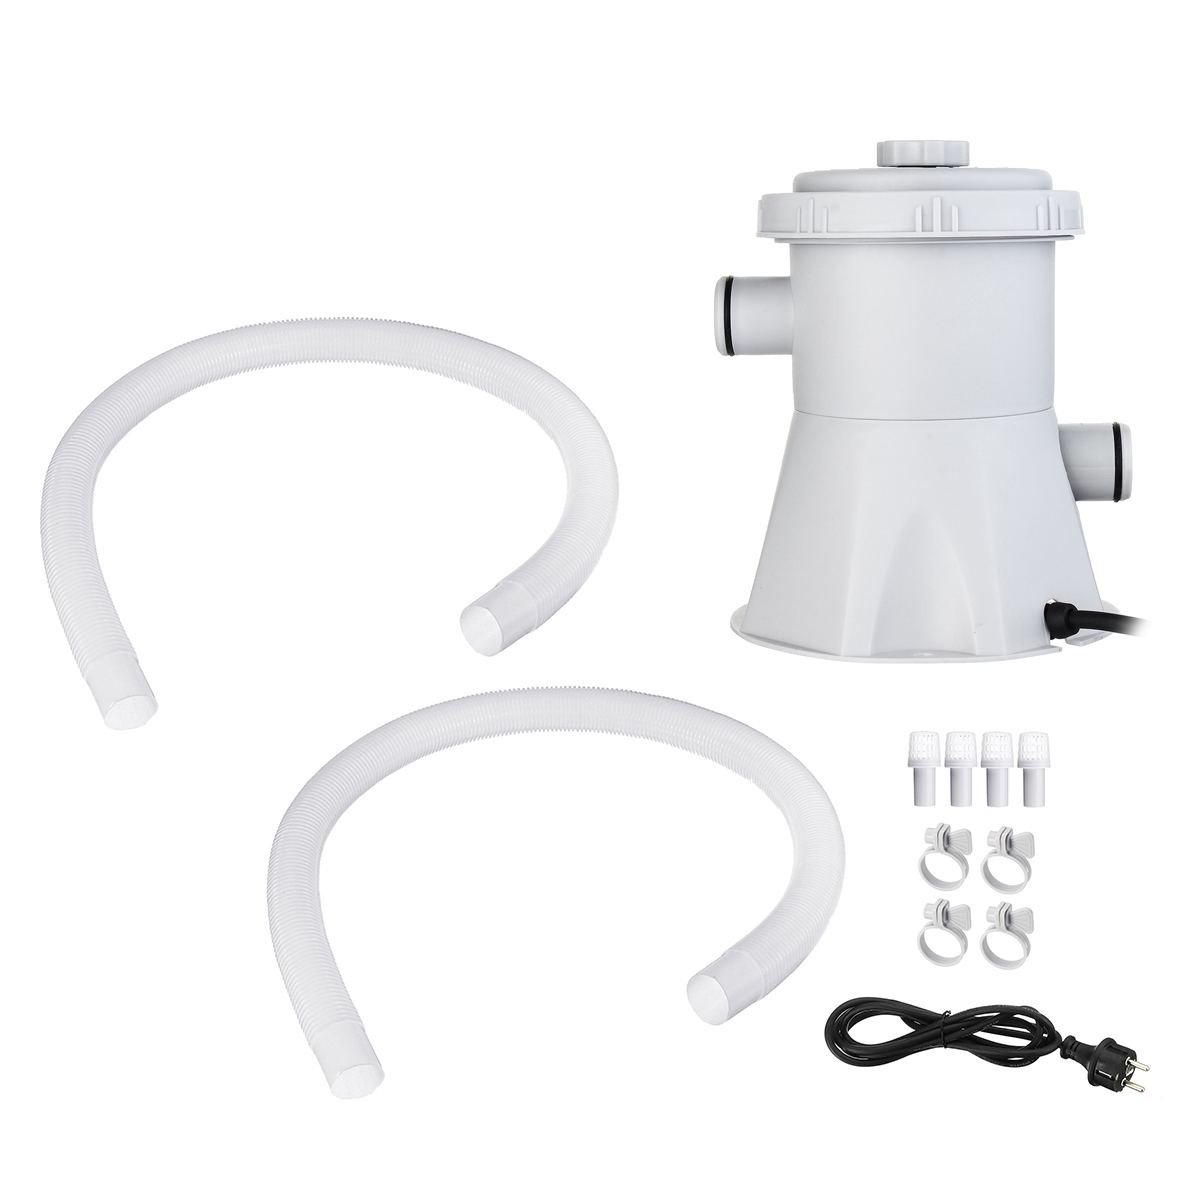 110V Electric Swimming Pool Filter Pump Swimming Pool Pump and Filter Kit Pool Pump Paddling Pool Pump Water|Cleaning Tools| |  - title=